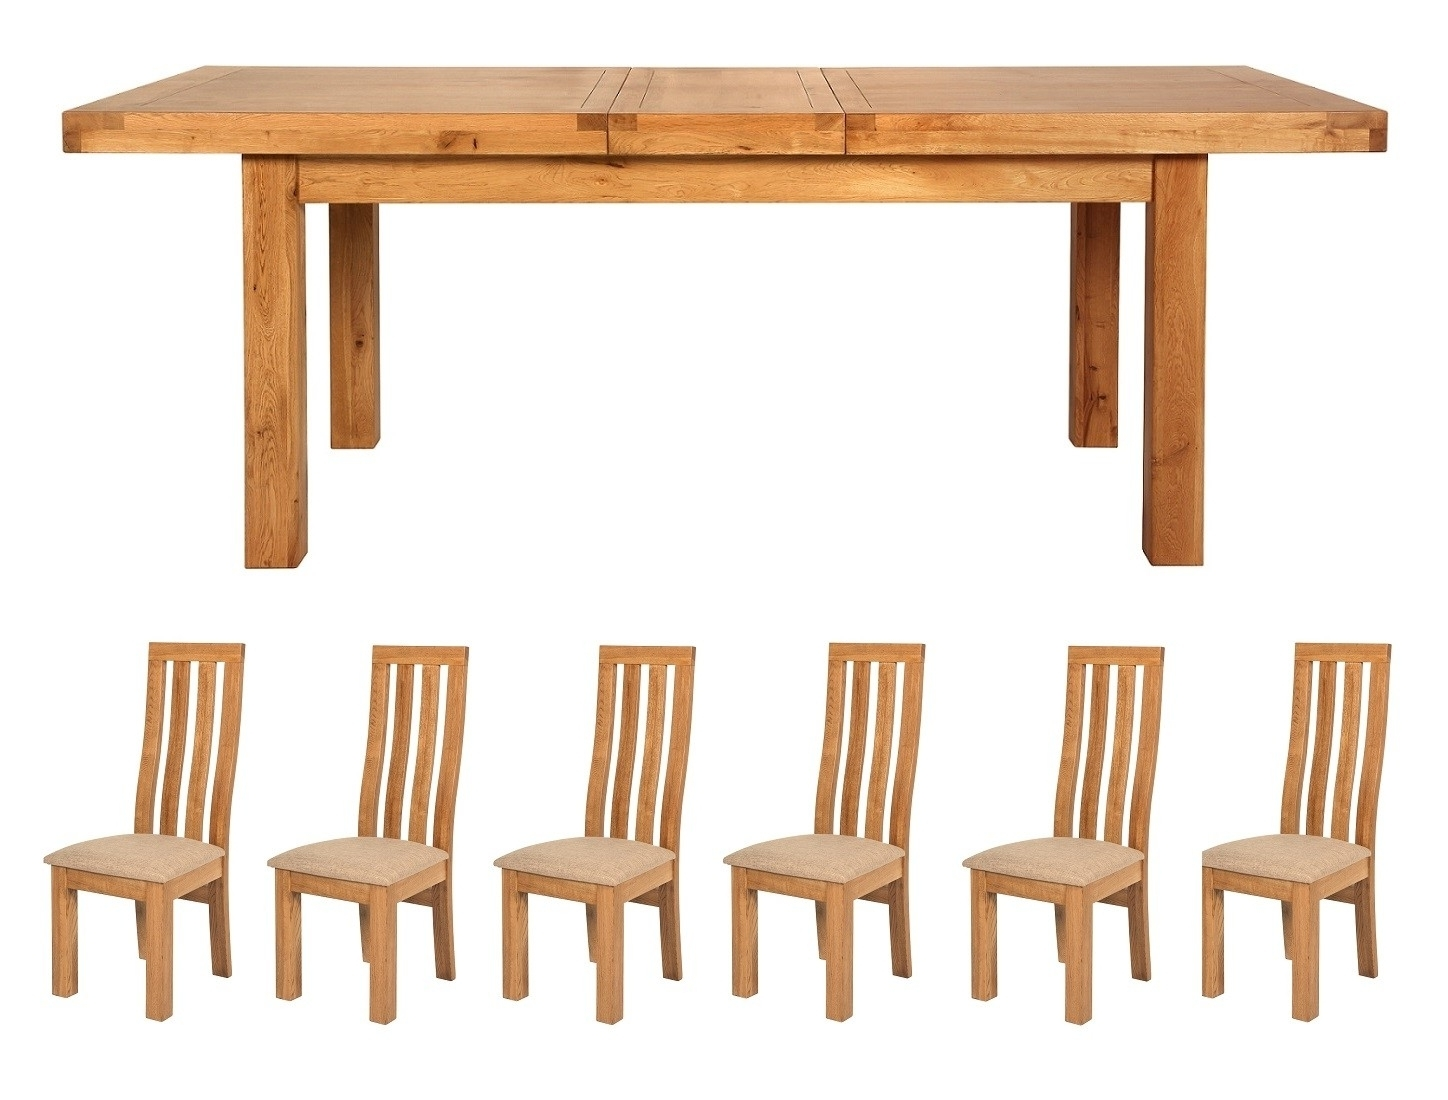 2018 Manor Solid Light Oak Large Extending Dining Table And 6 Chairs Set With Oak Extending Dining Tables And 6 Chairs (View 25 of 25)